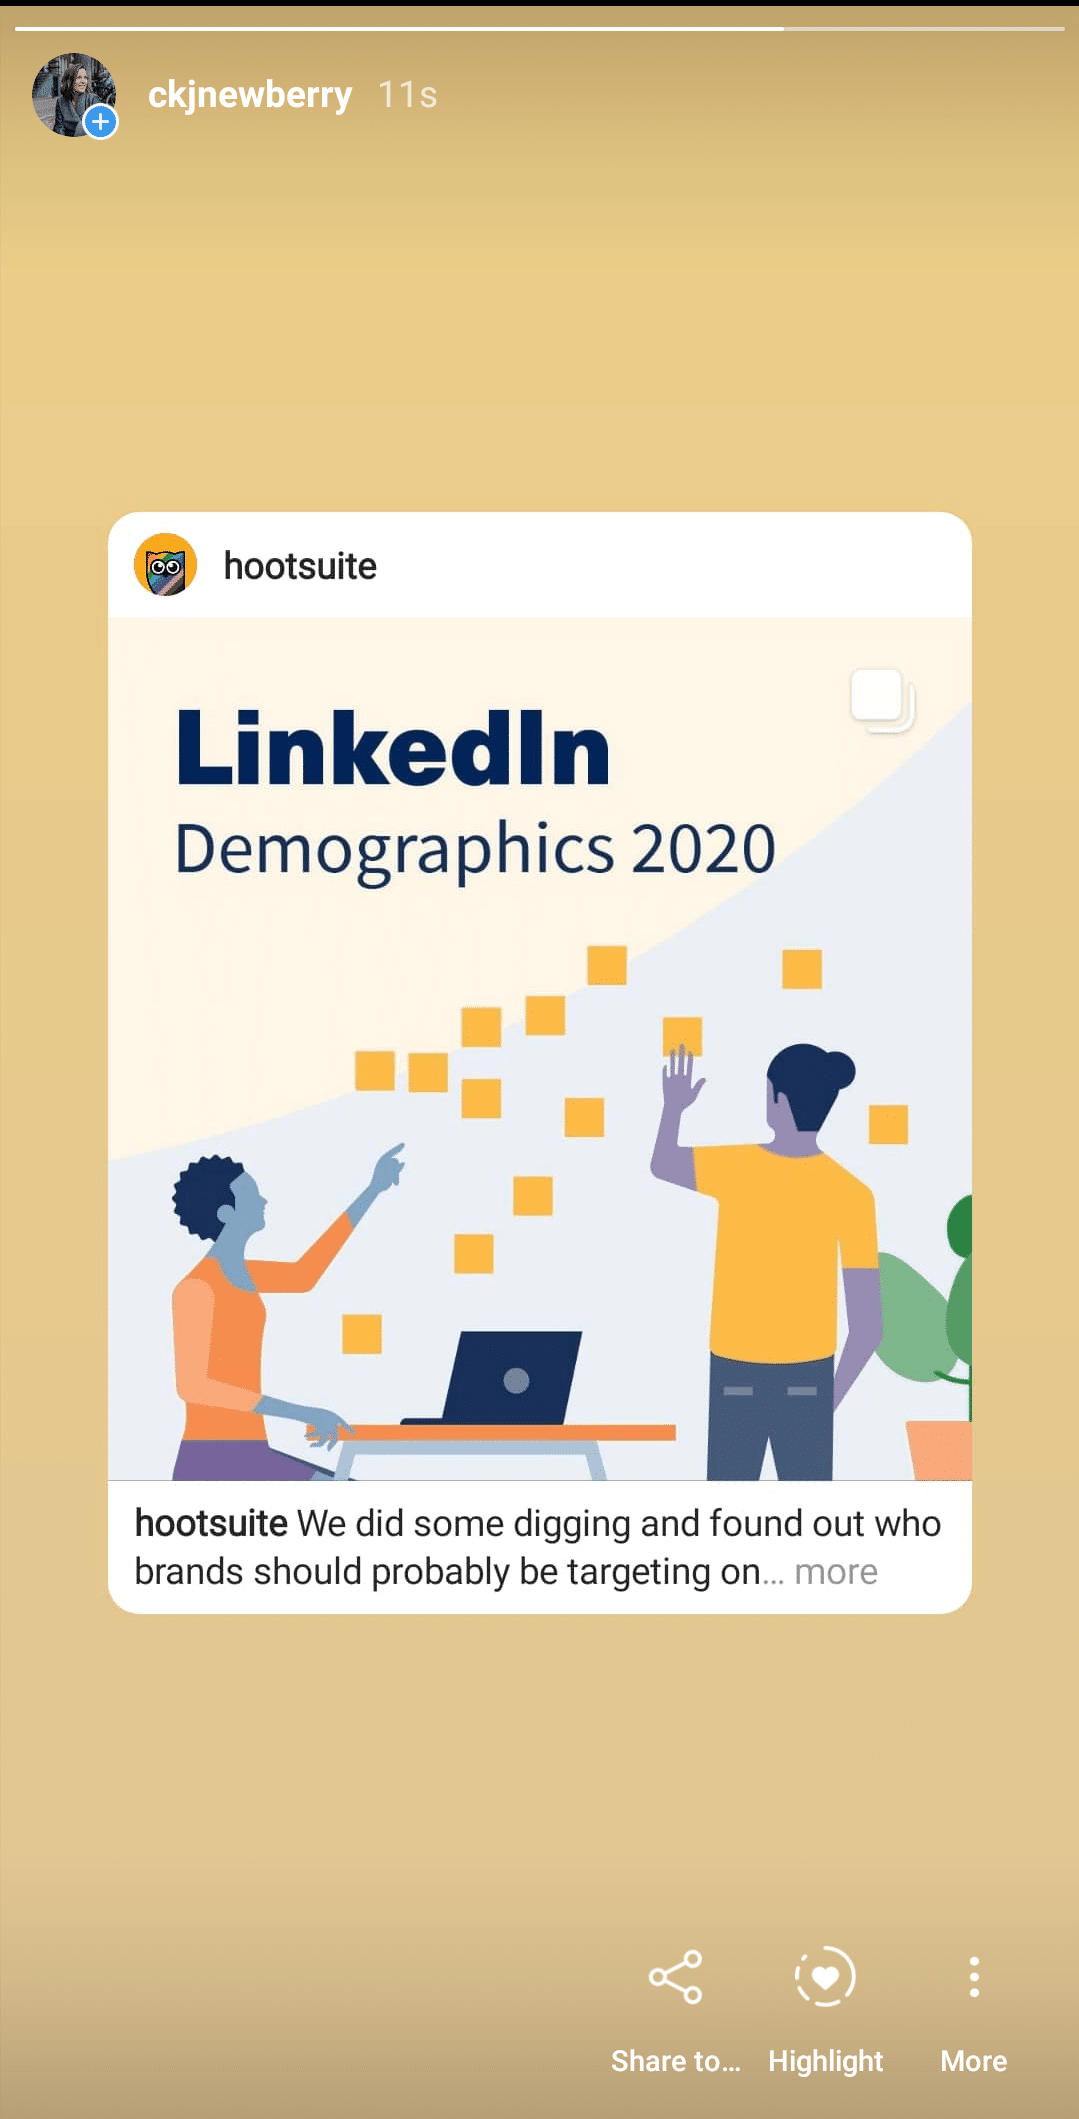 История Hootsuite LinkedIn demographics re -share